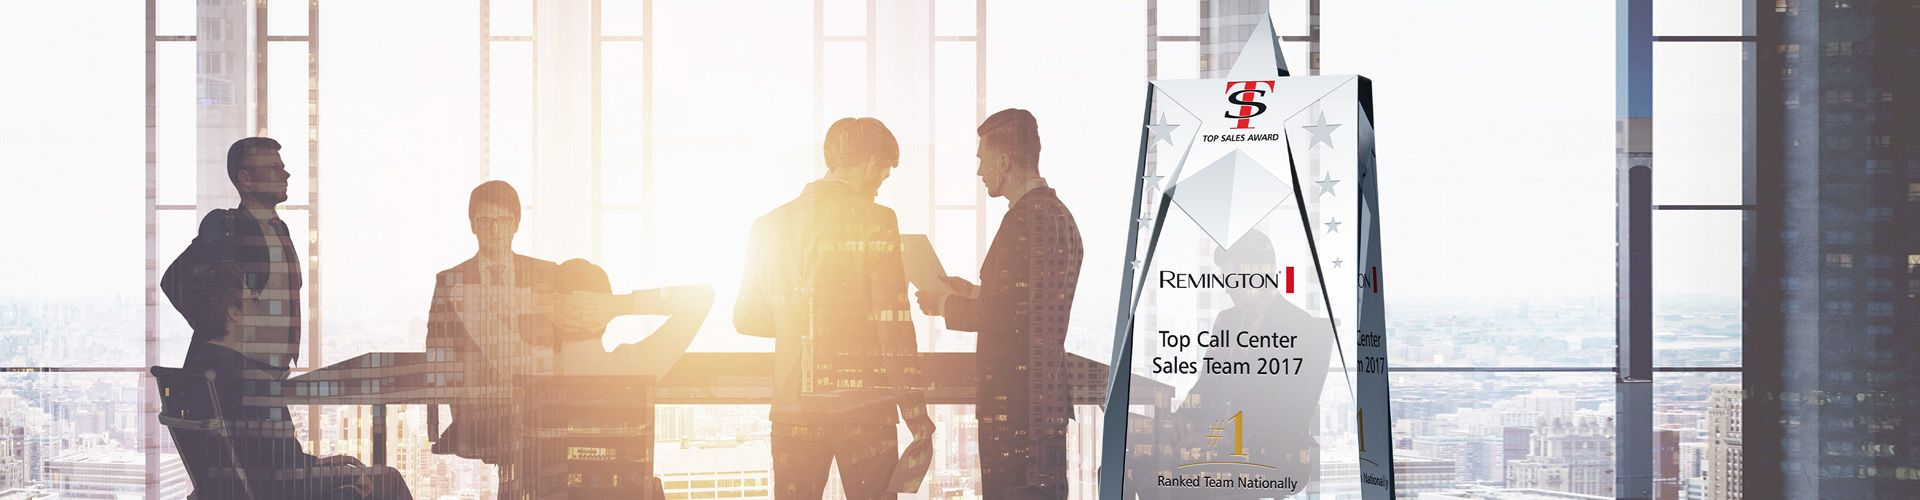 Top Awards Trophies for Your Sales Team - Banner 1